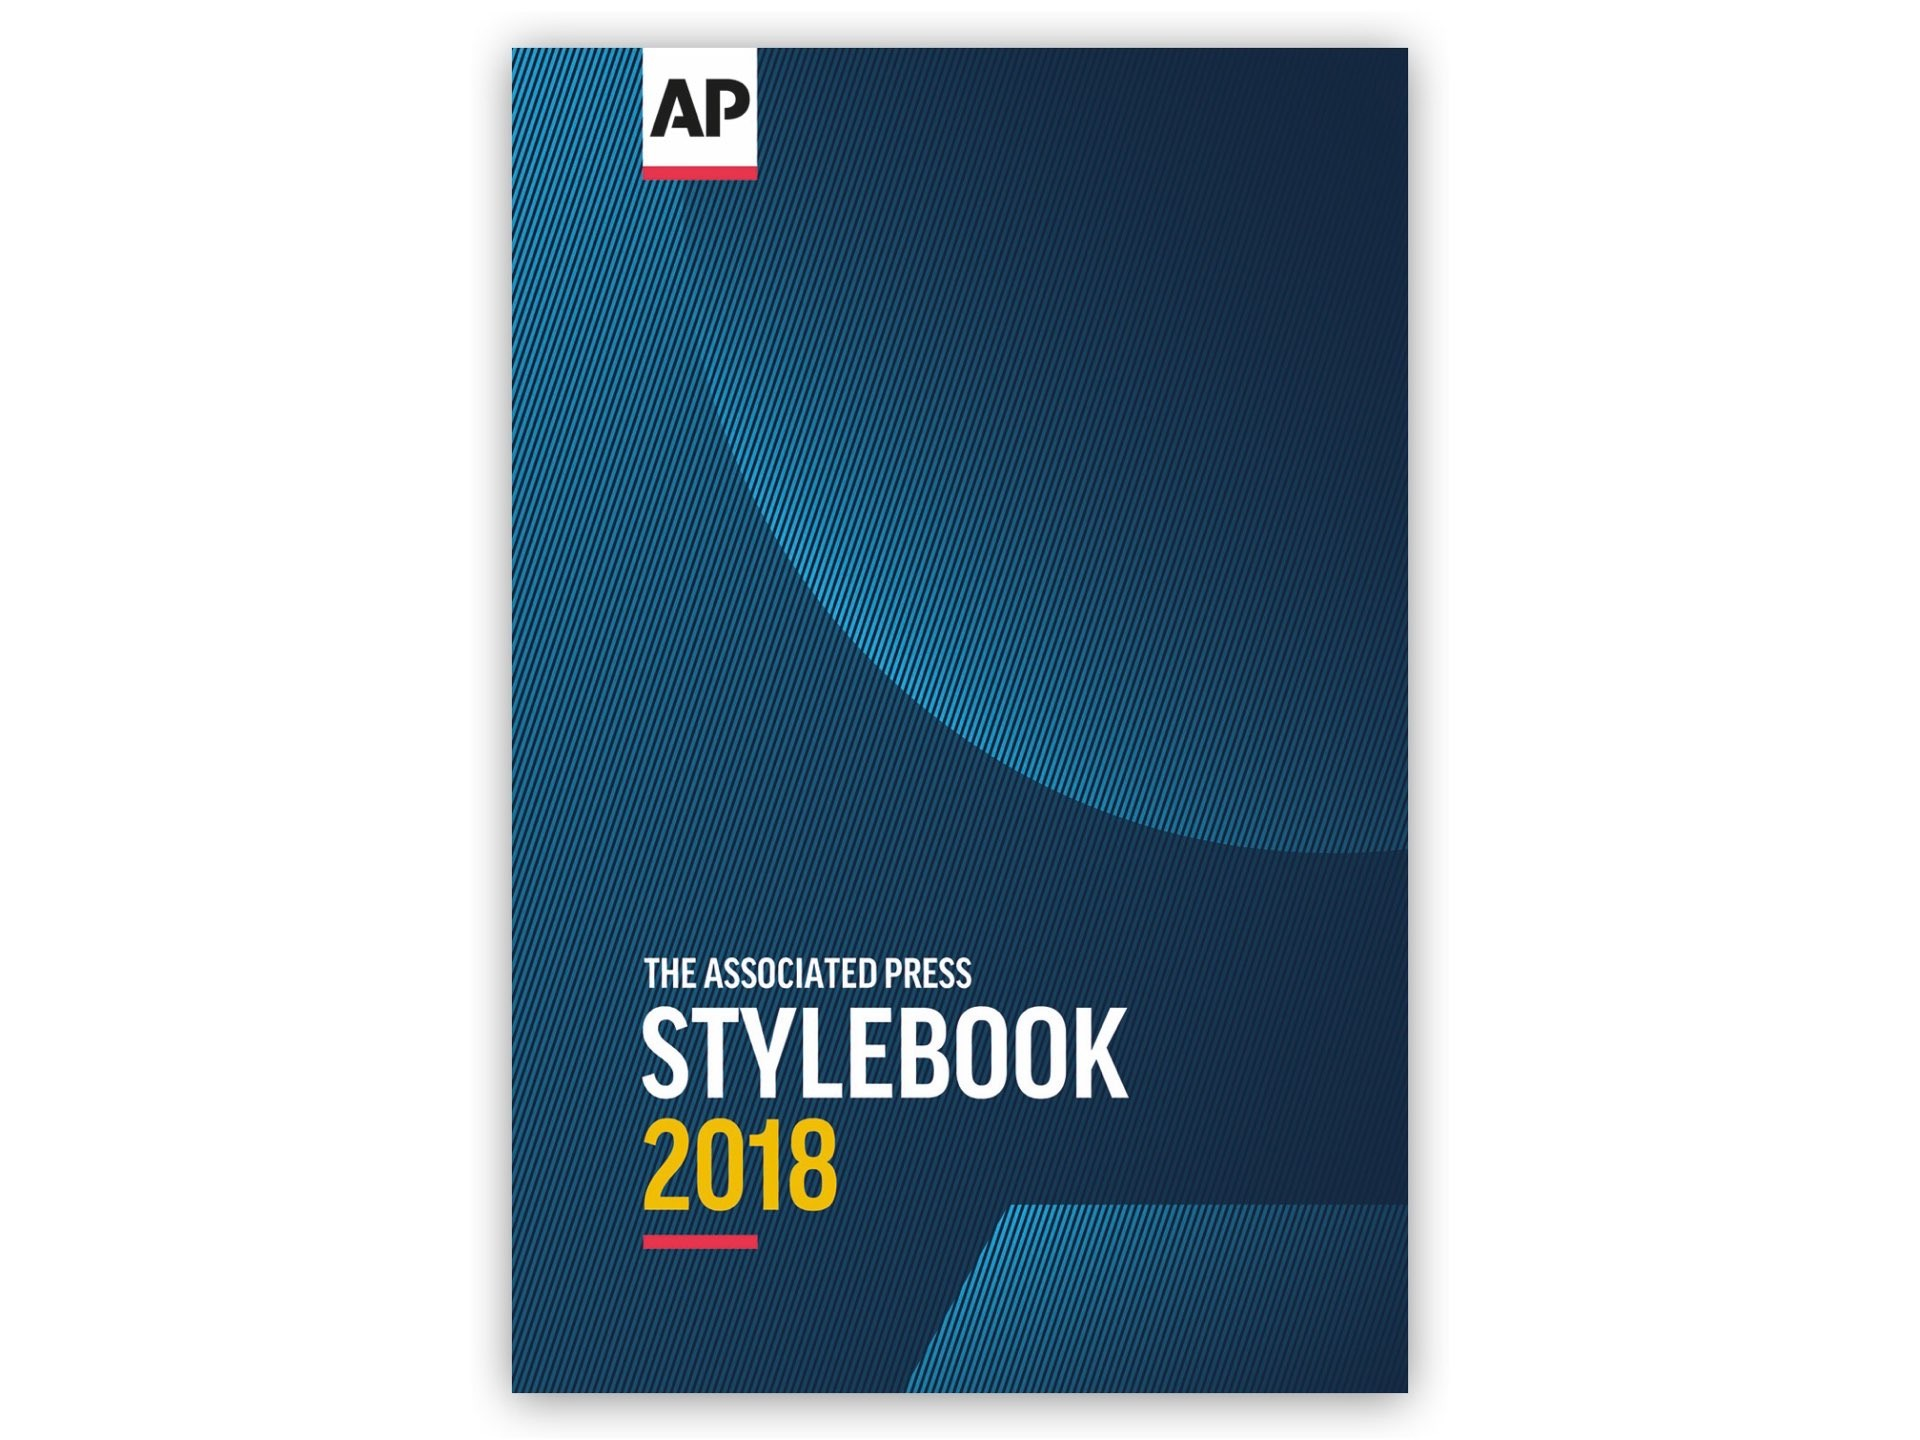 The AP Stylebook 2018 by the Associated Press.